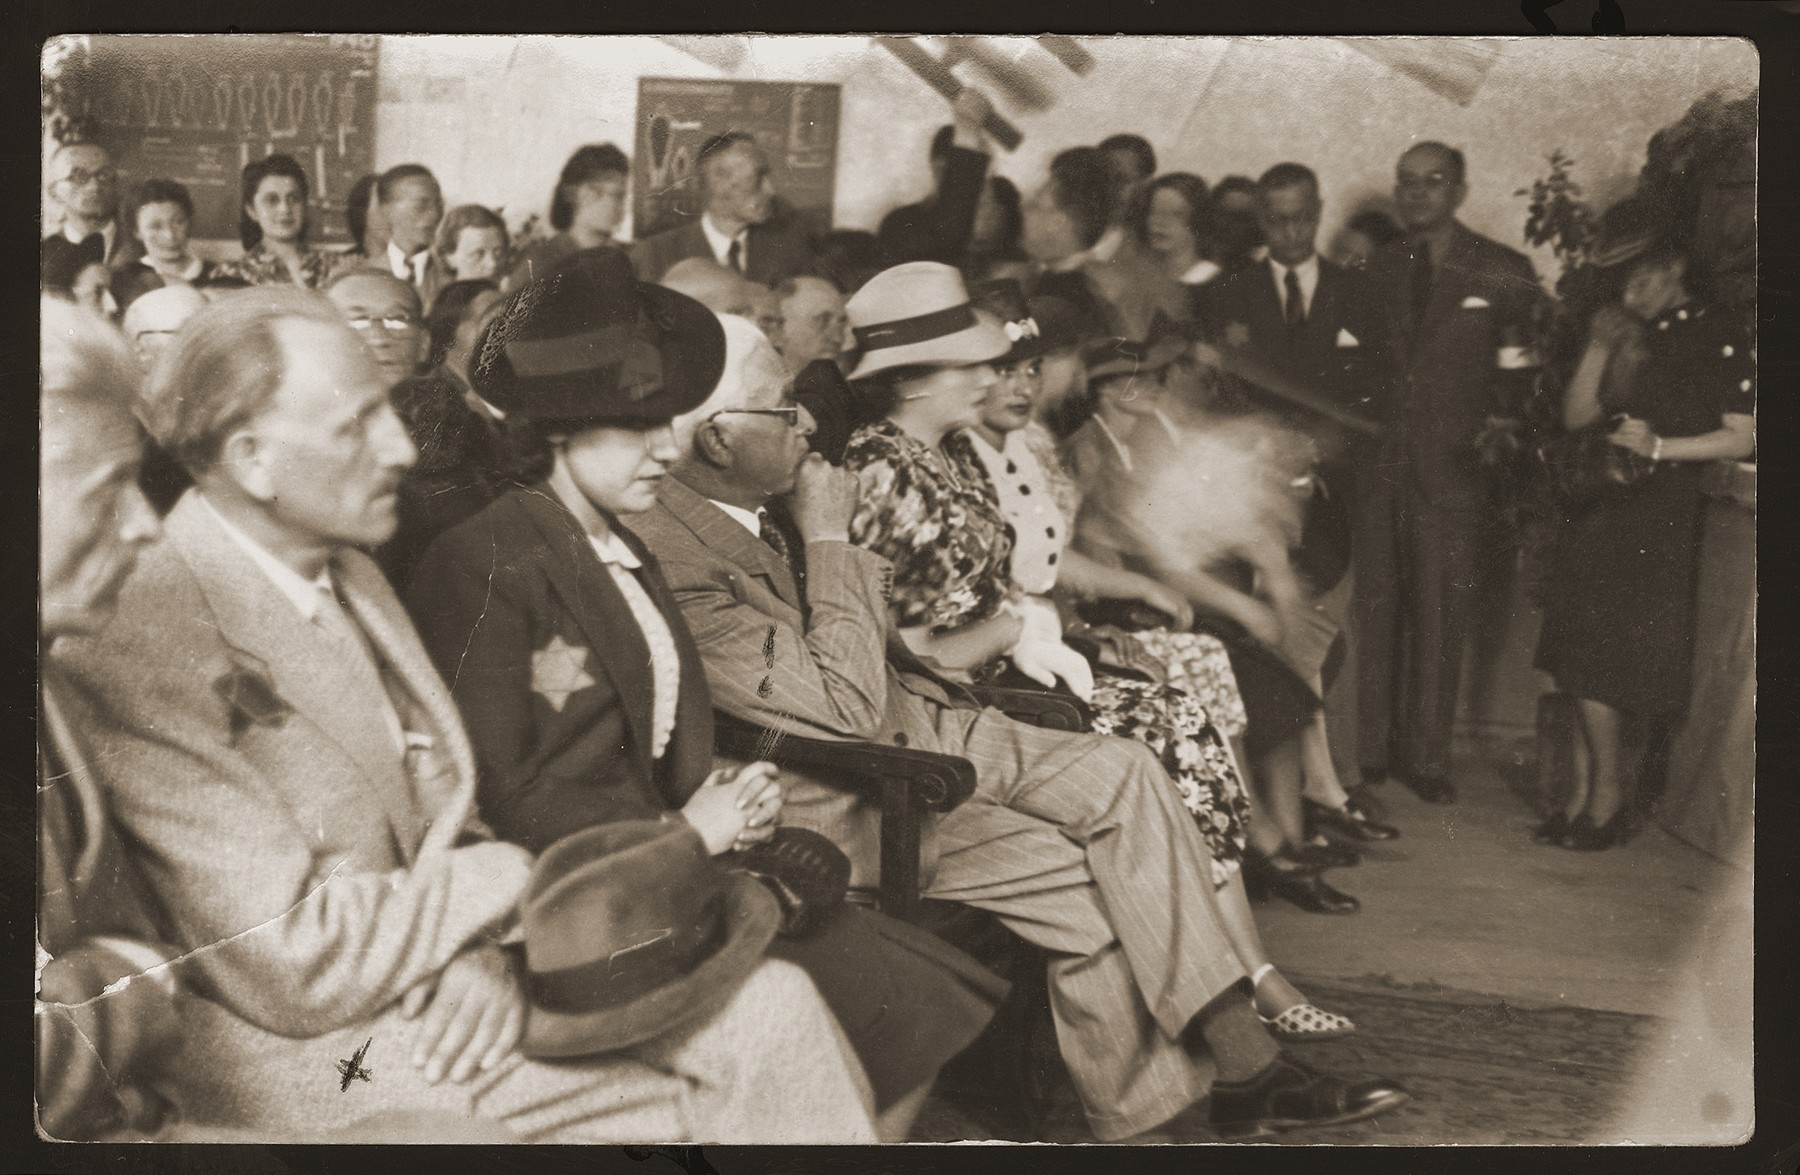 Jewish council chairman Mordechai Chaim Rumkowski (fourth from the left), attends a ceremony in the Lodz ghetto.    Also pictured are Dora Fuks (third from the left) and Dr. Michal Eliasberg (second from the left).